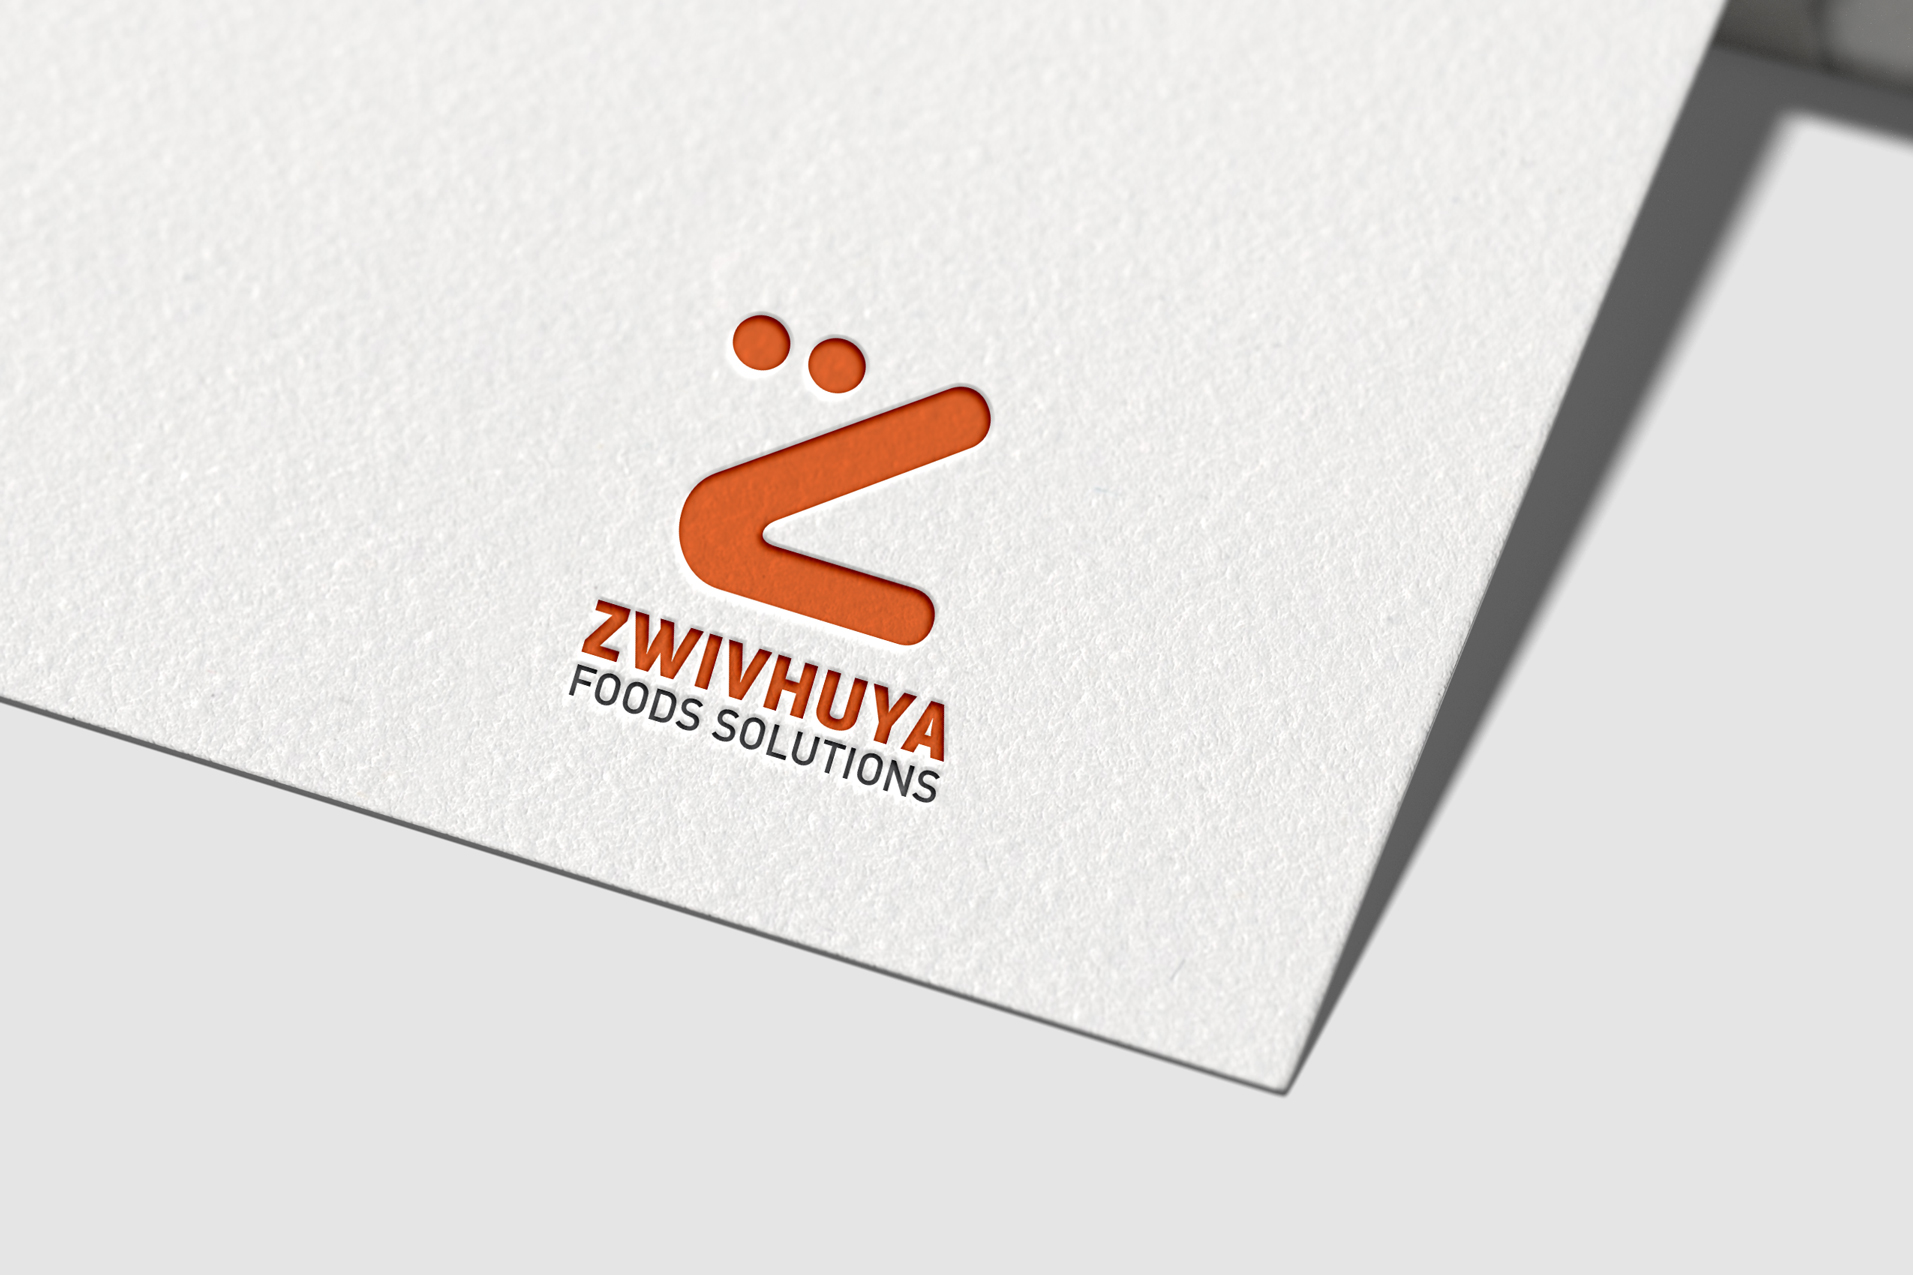 Zwivhuya-Food-Solutions-logo-on-paper